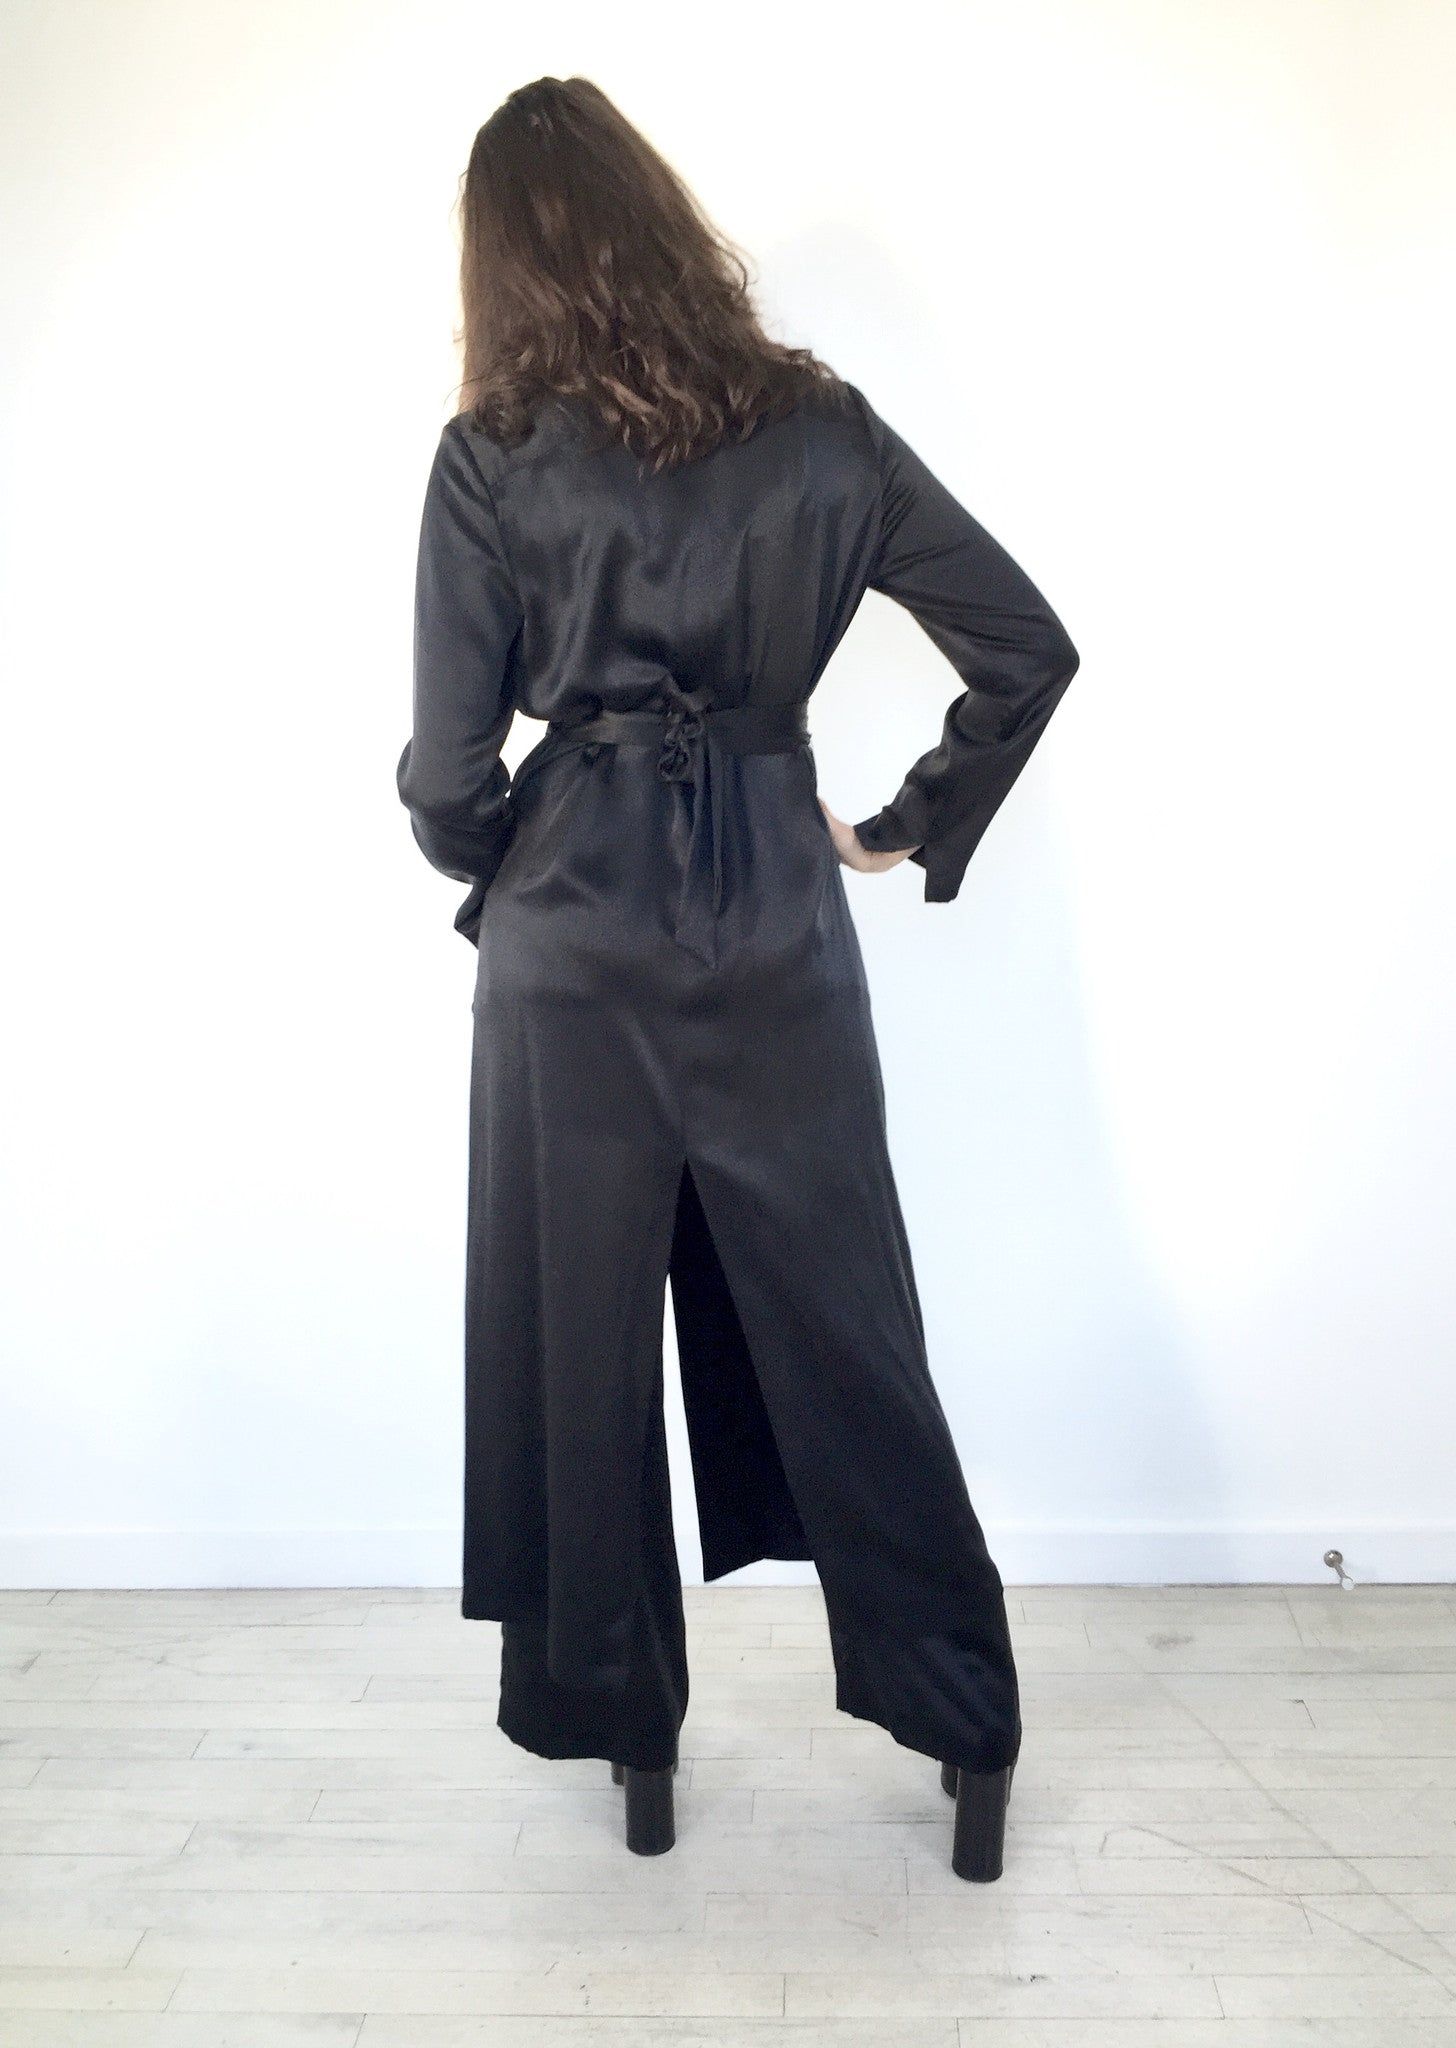 Signature Silk Duster Robe Wendy Nichol Fashion Designer Handmade in NYC daughter Sofia G